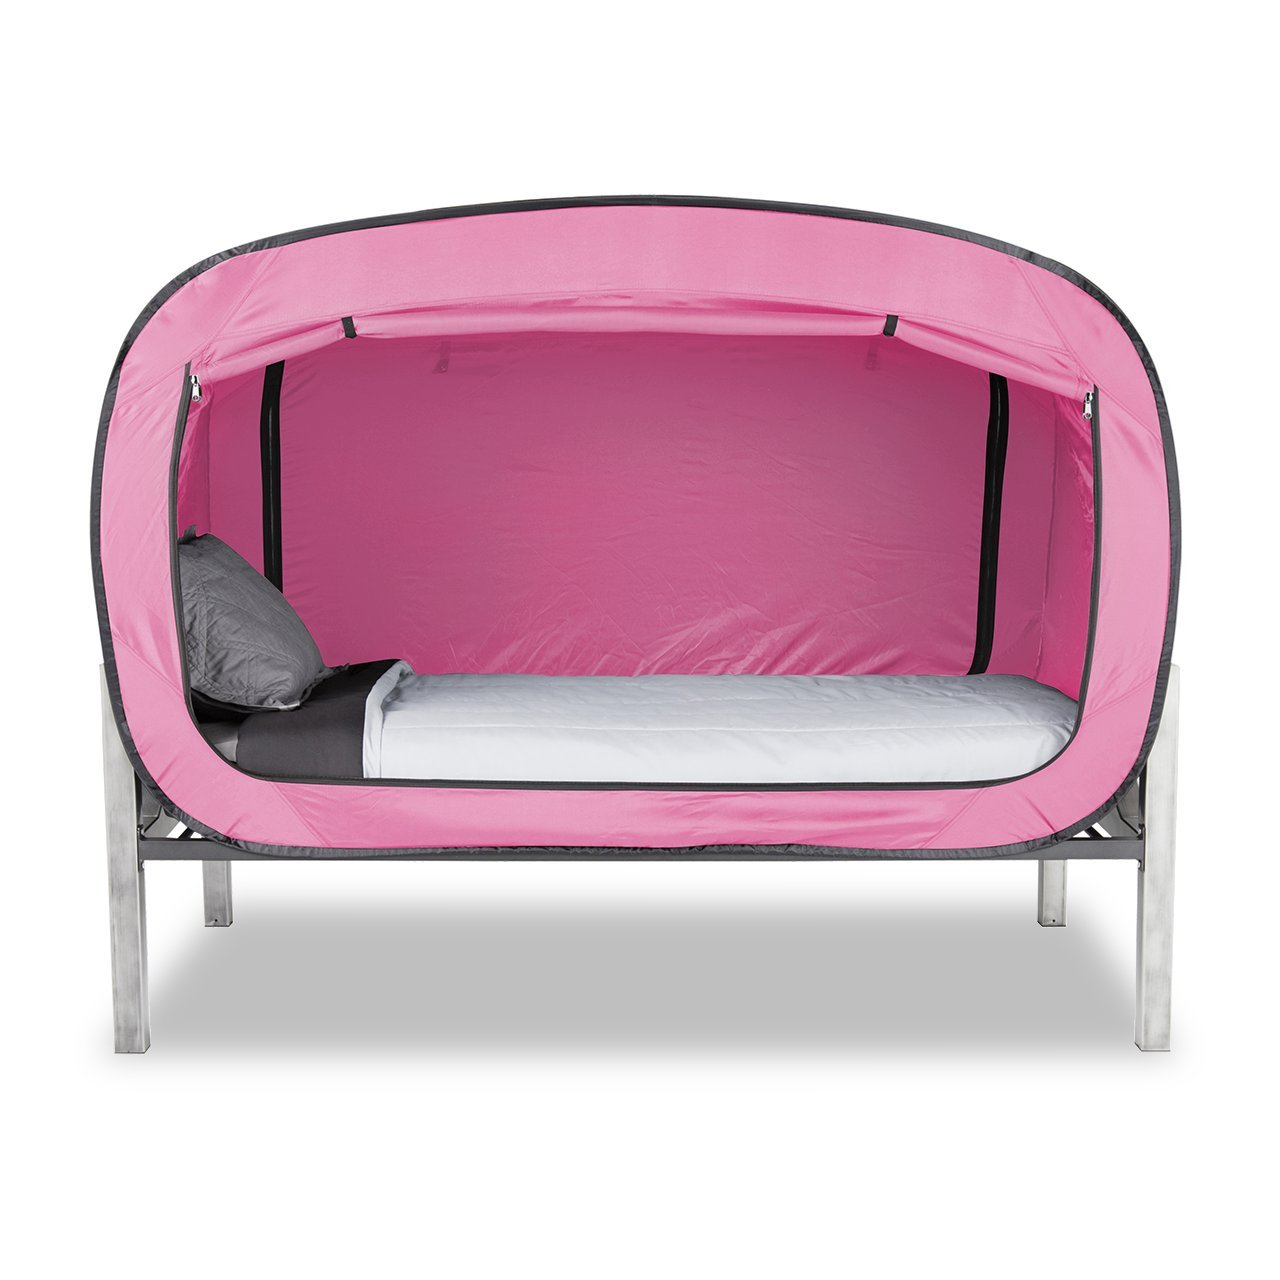 Nice Privacy Pop Bed Tent Part - 10: Amazon.com